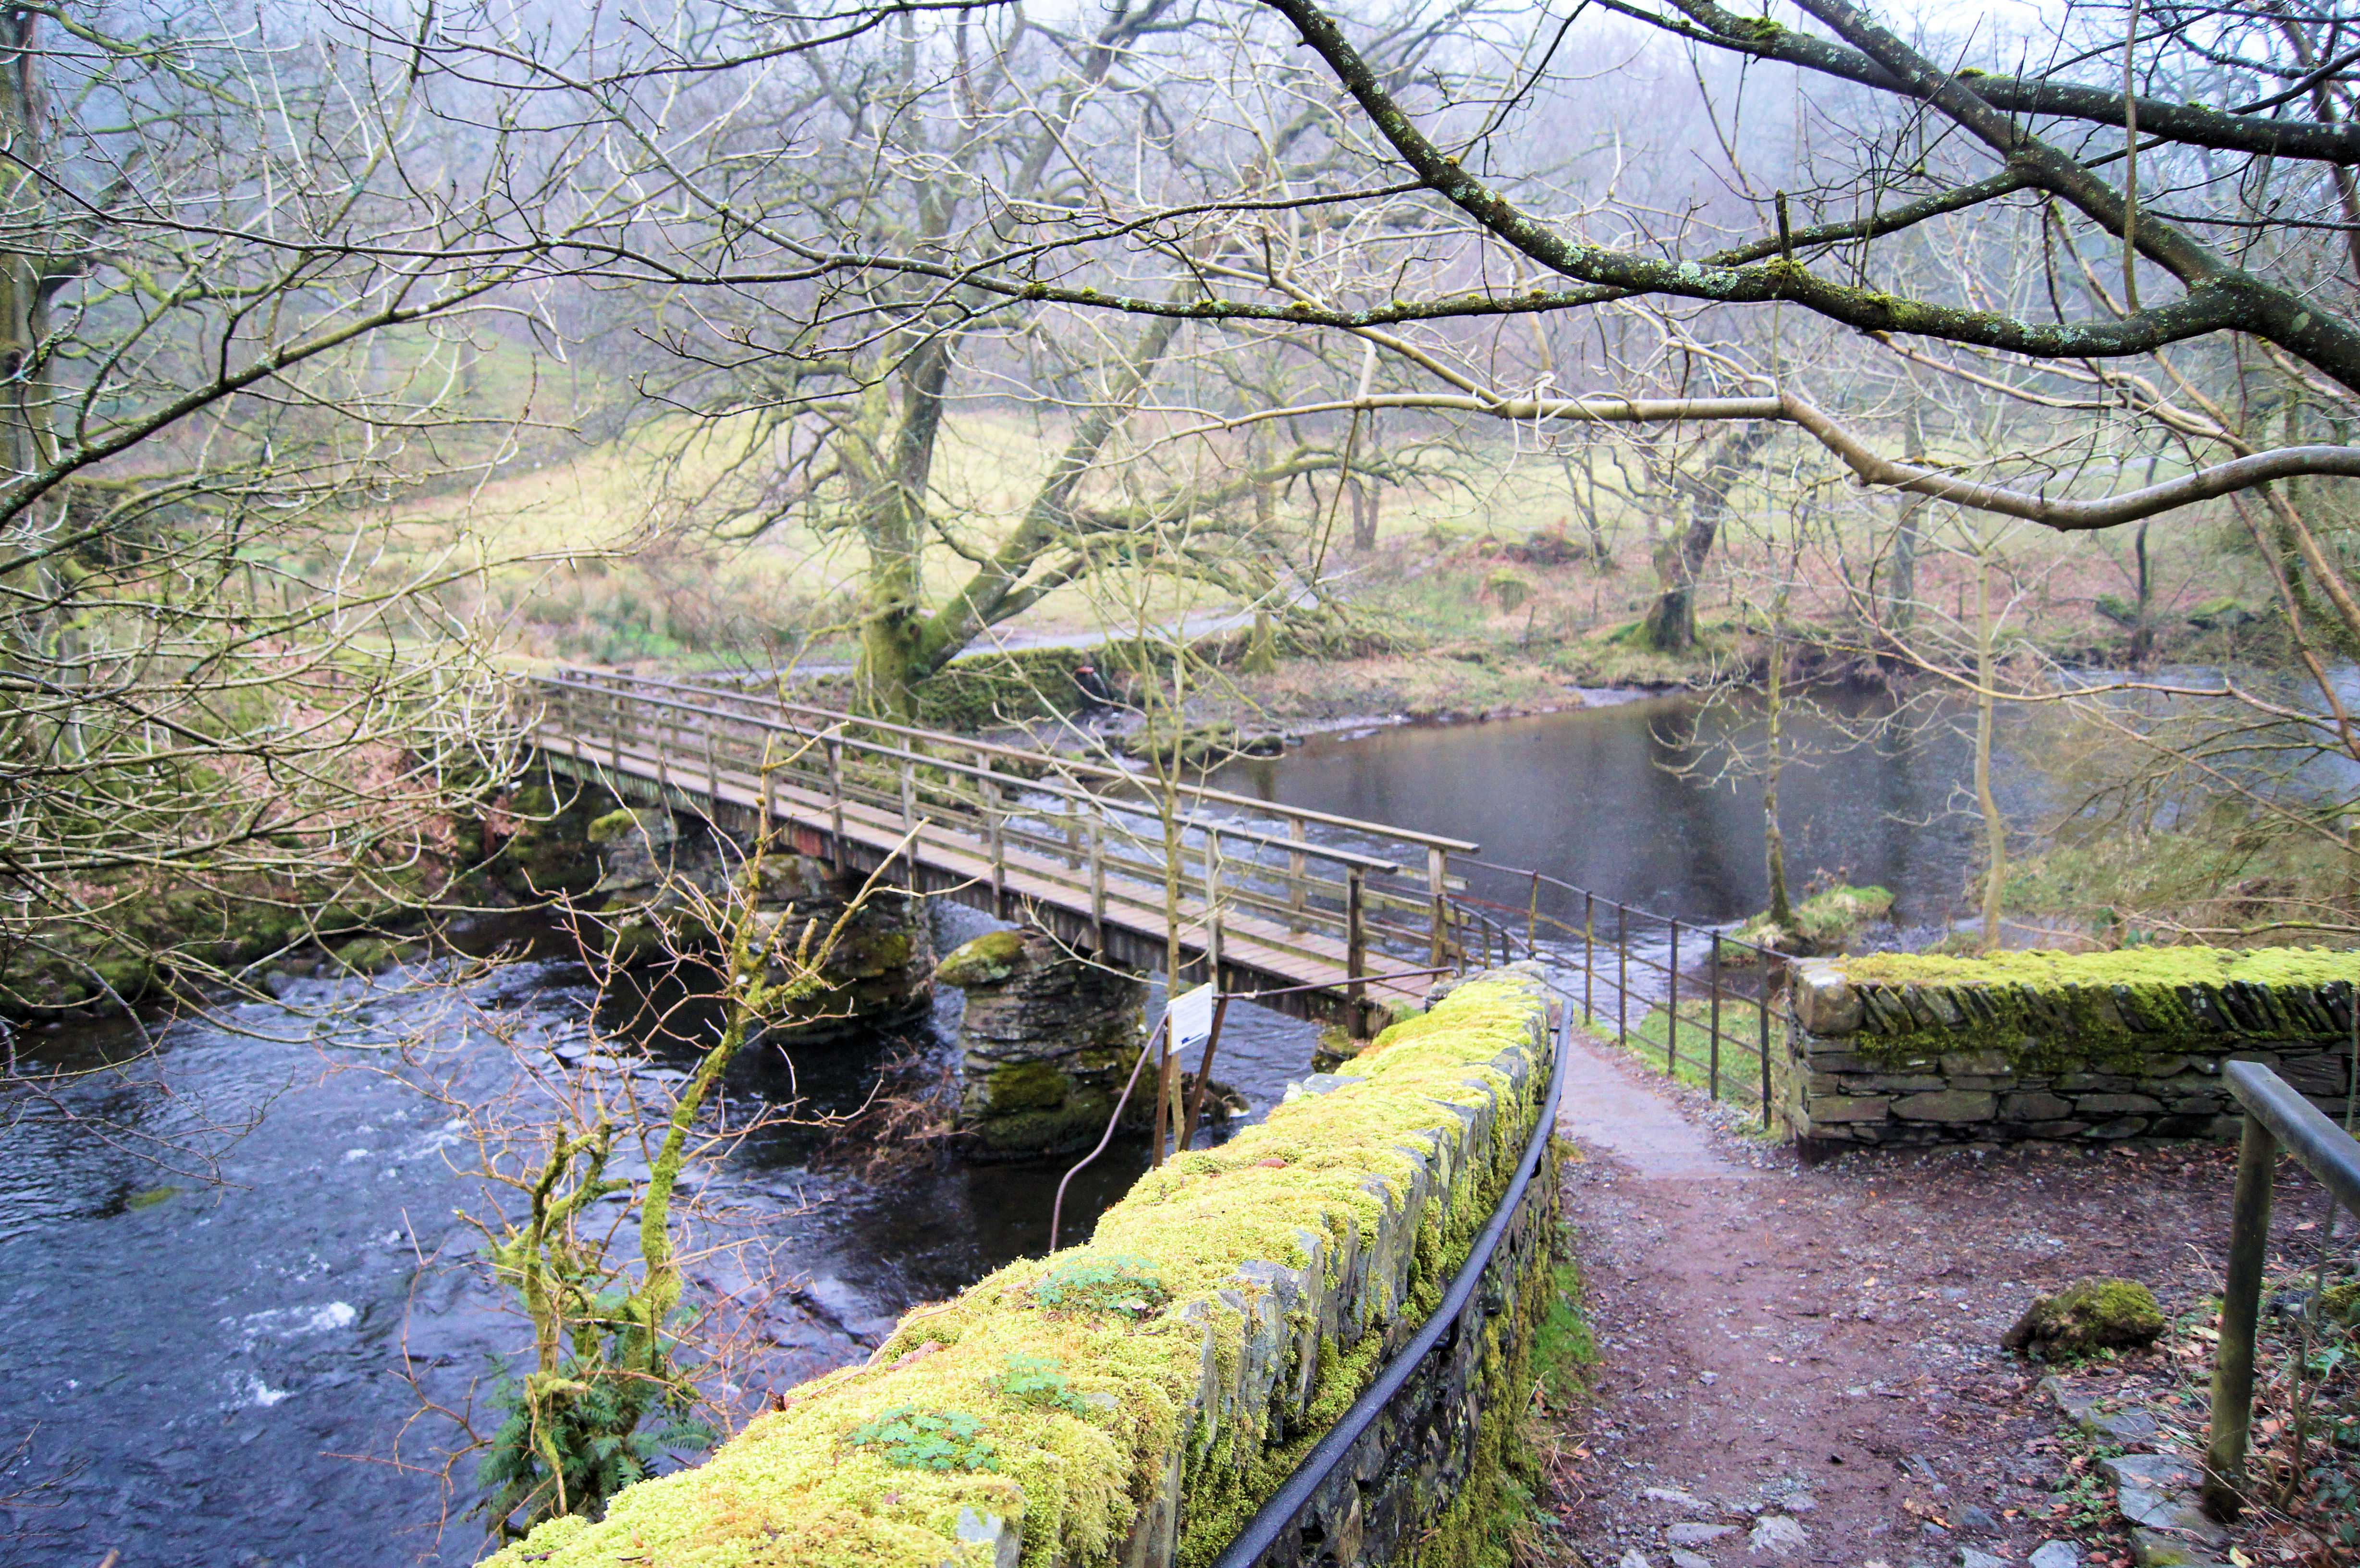 Footbridge over the River Rothay at Rydal